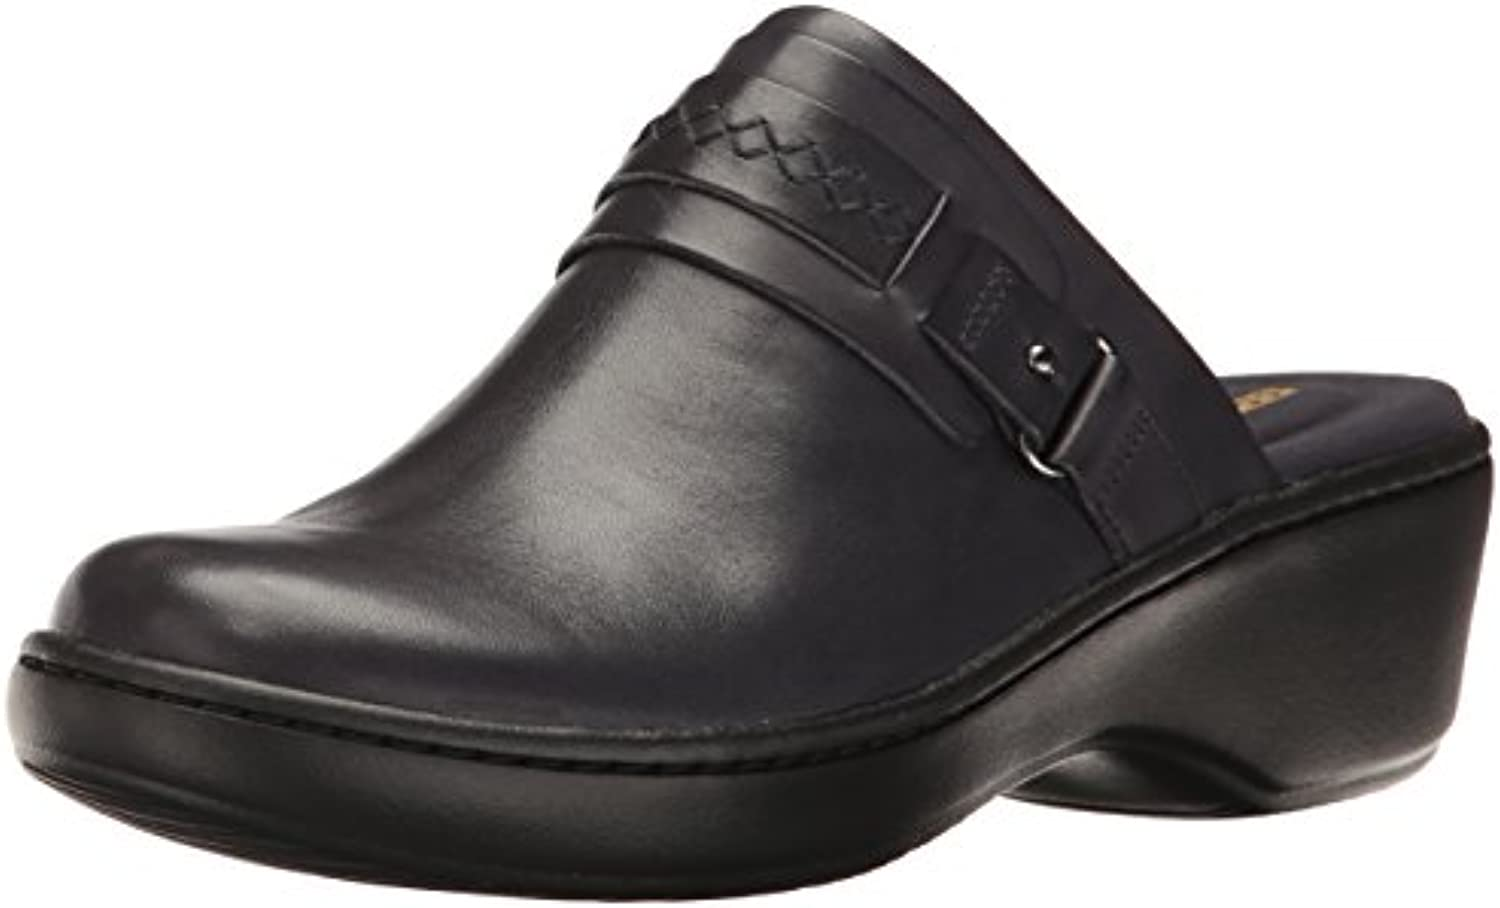 Clarks Women's Delana 6.5 Amber Mule Navy Leather 6.5 Delana W US b365b9